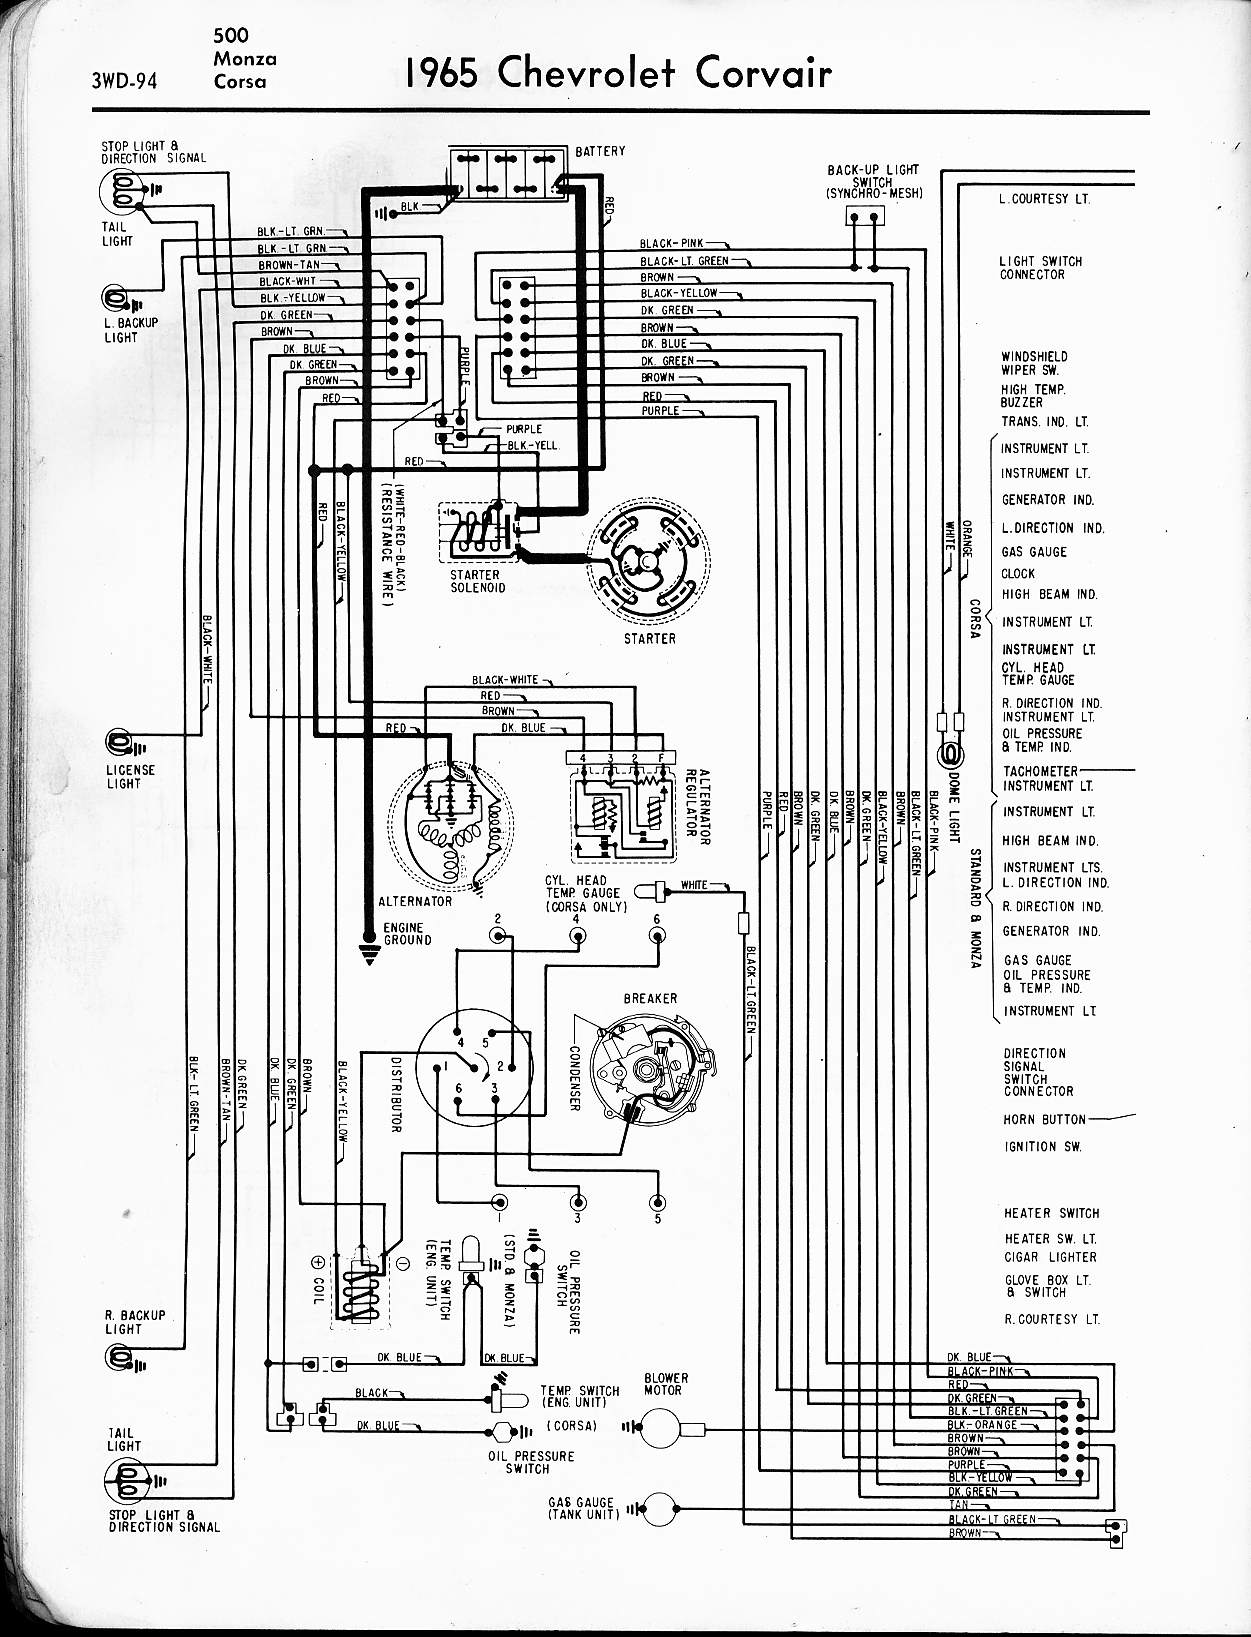 1962 impala voltage regulator wiring diagram 44 wiring 69 Ford Mustang 67  Ford Mustang